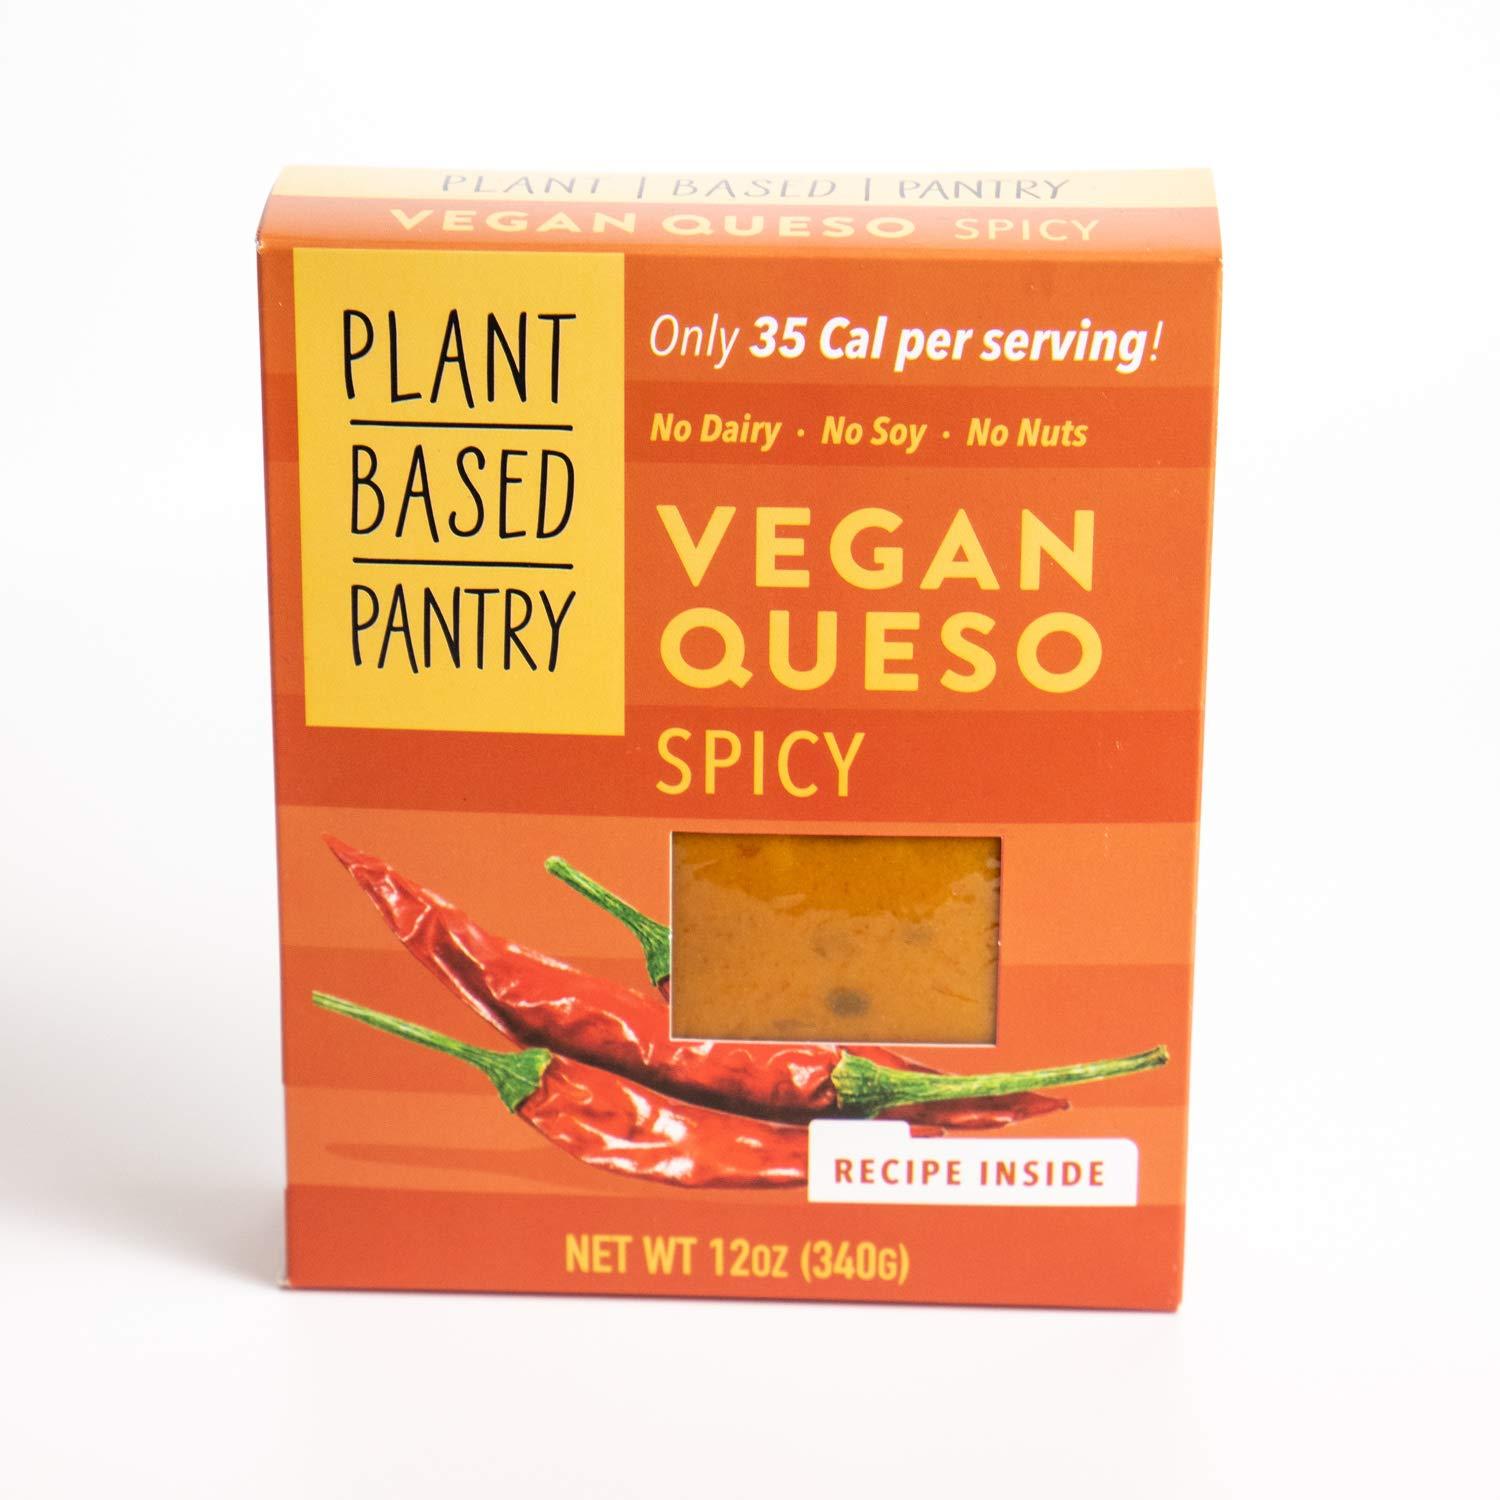 Vegan Queso Spicy by Plantbased Pantry